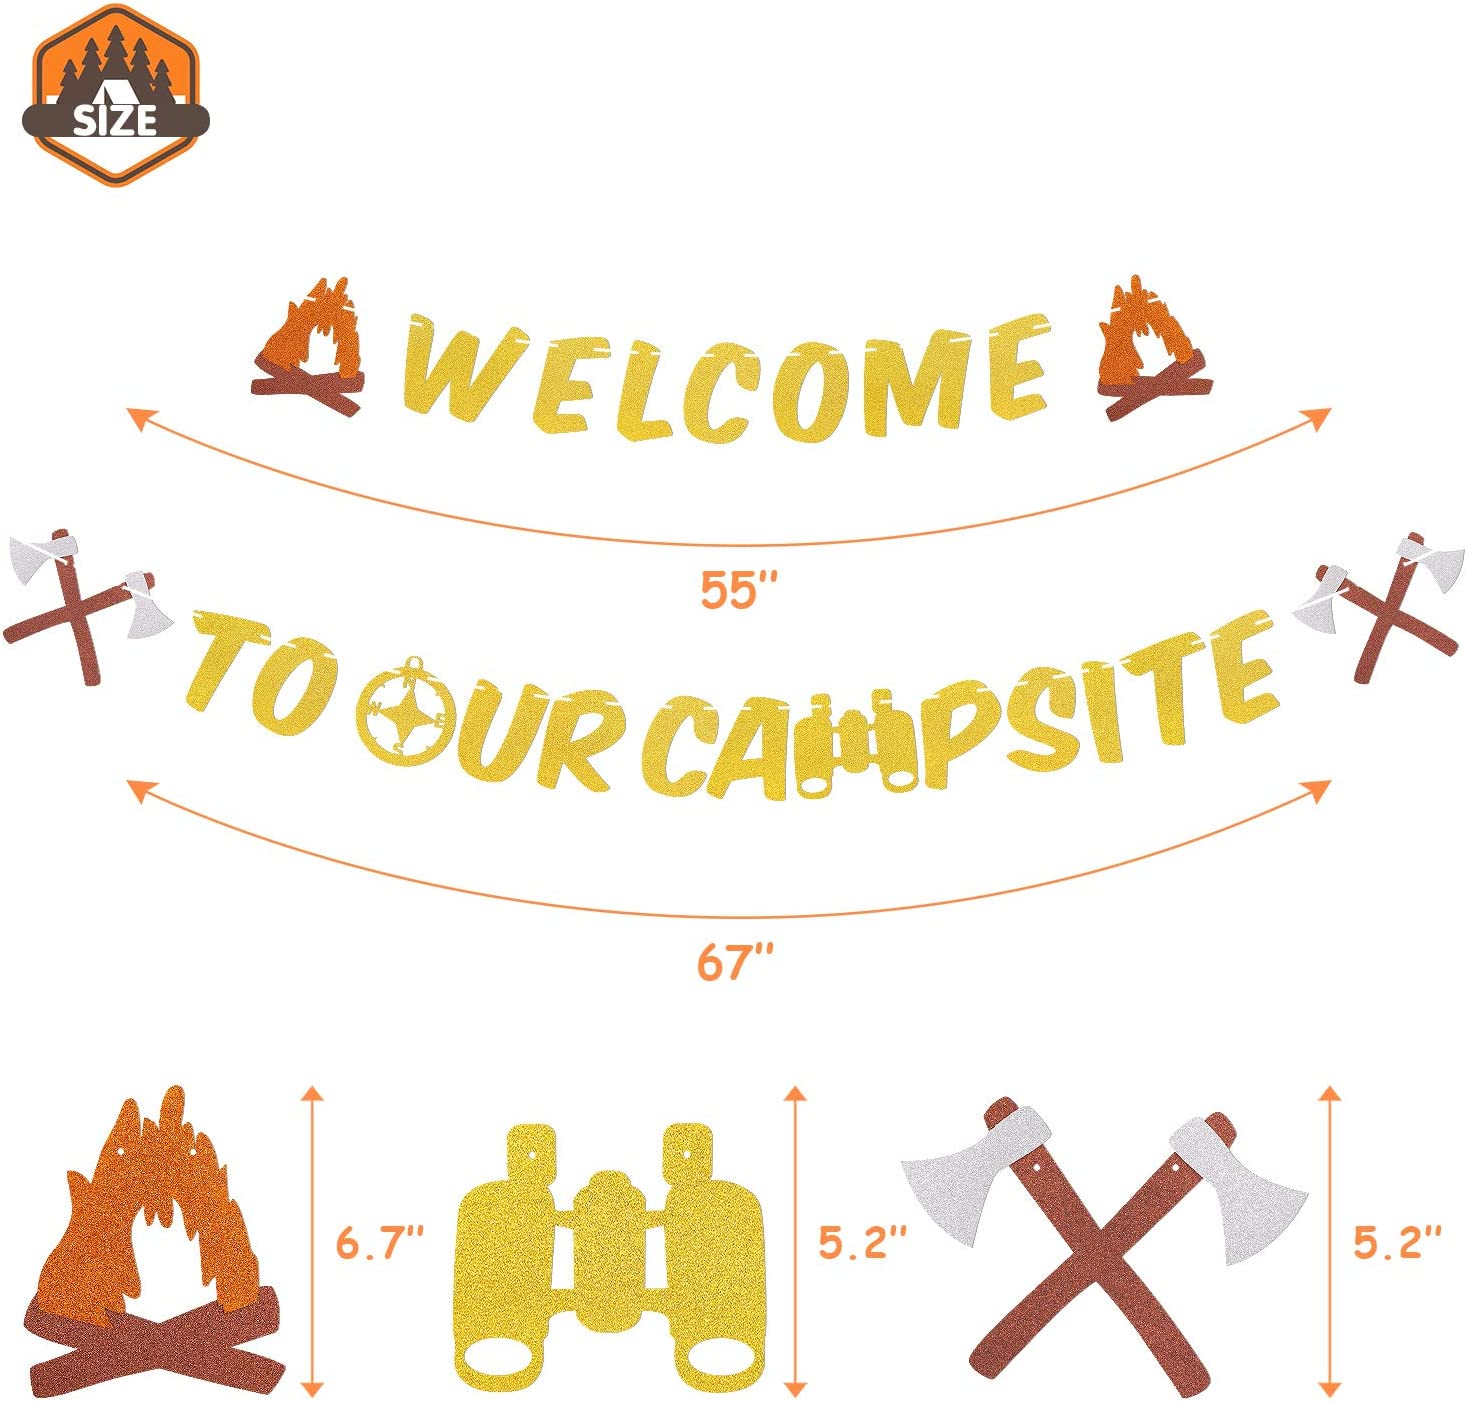 Welcome to Our Campsite Banner Sign Camping Themed Home Garden House Yard Flag Happy Retirement Birthday Baby Shower Party Supplies Gold Glitter Decorations-PRESTRUNG